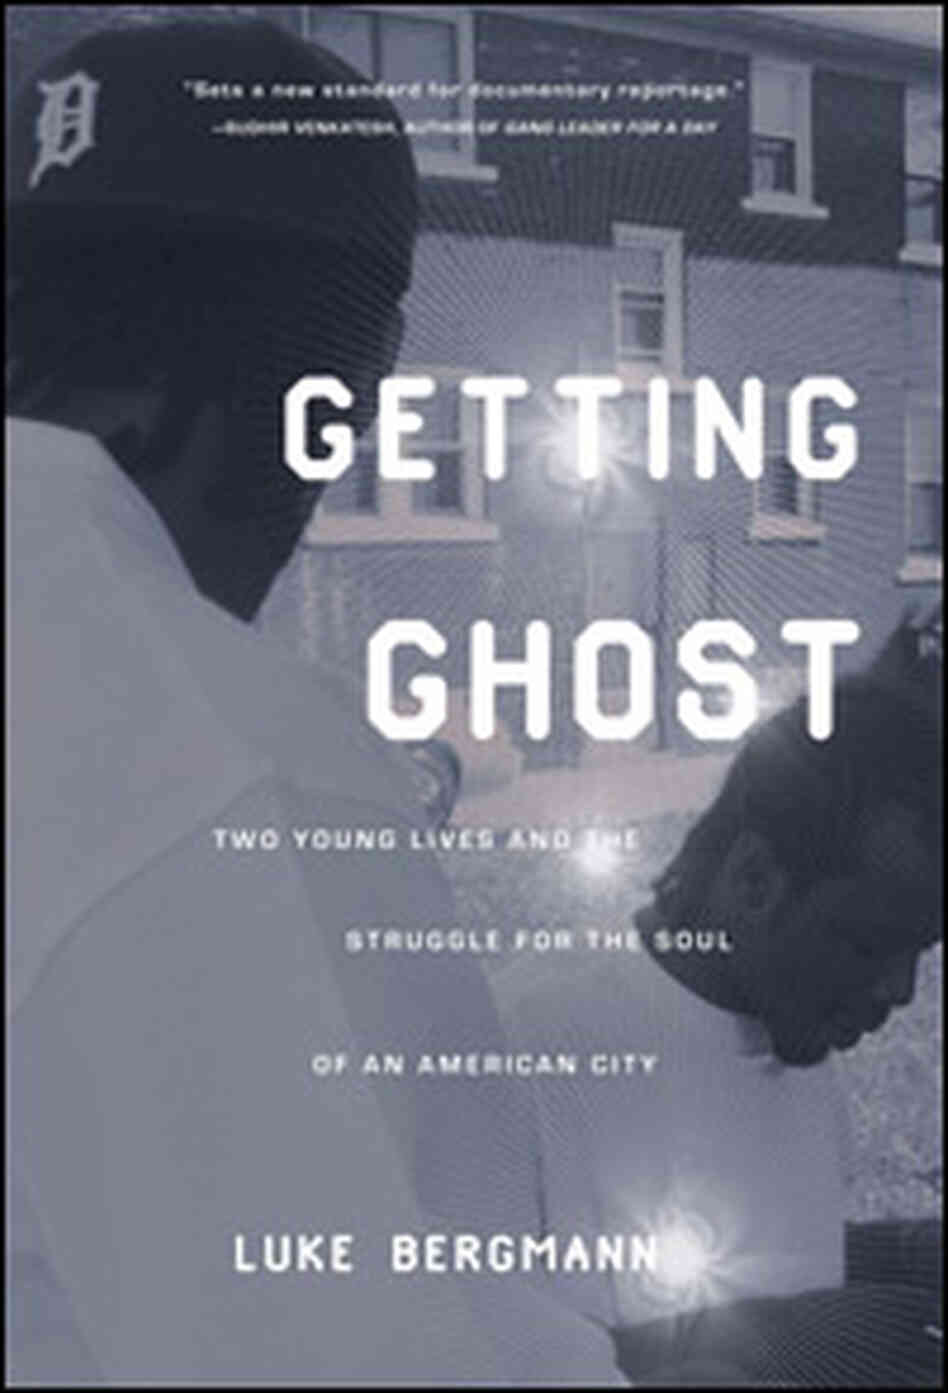 'Getting Ghost'